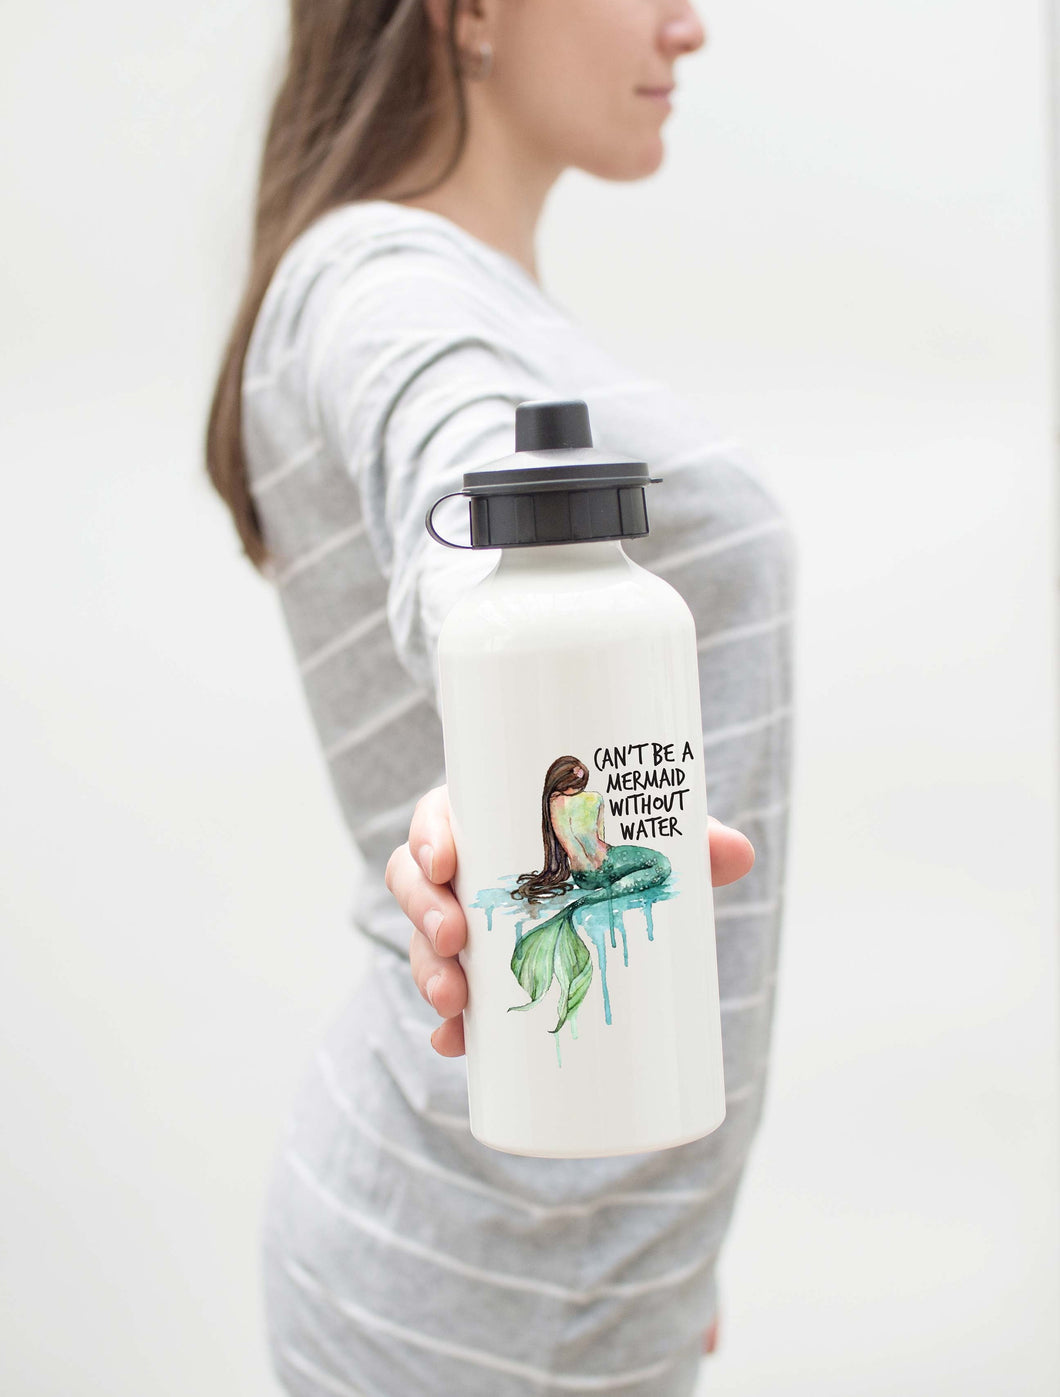 Cant Be A Mermaid Without Water//Water Bottle//